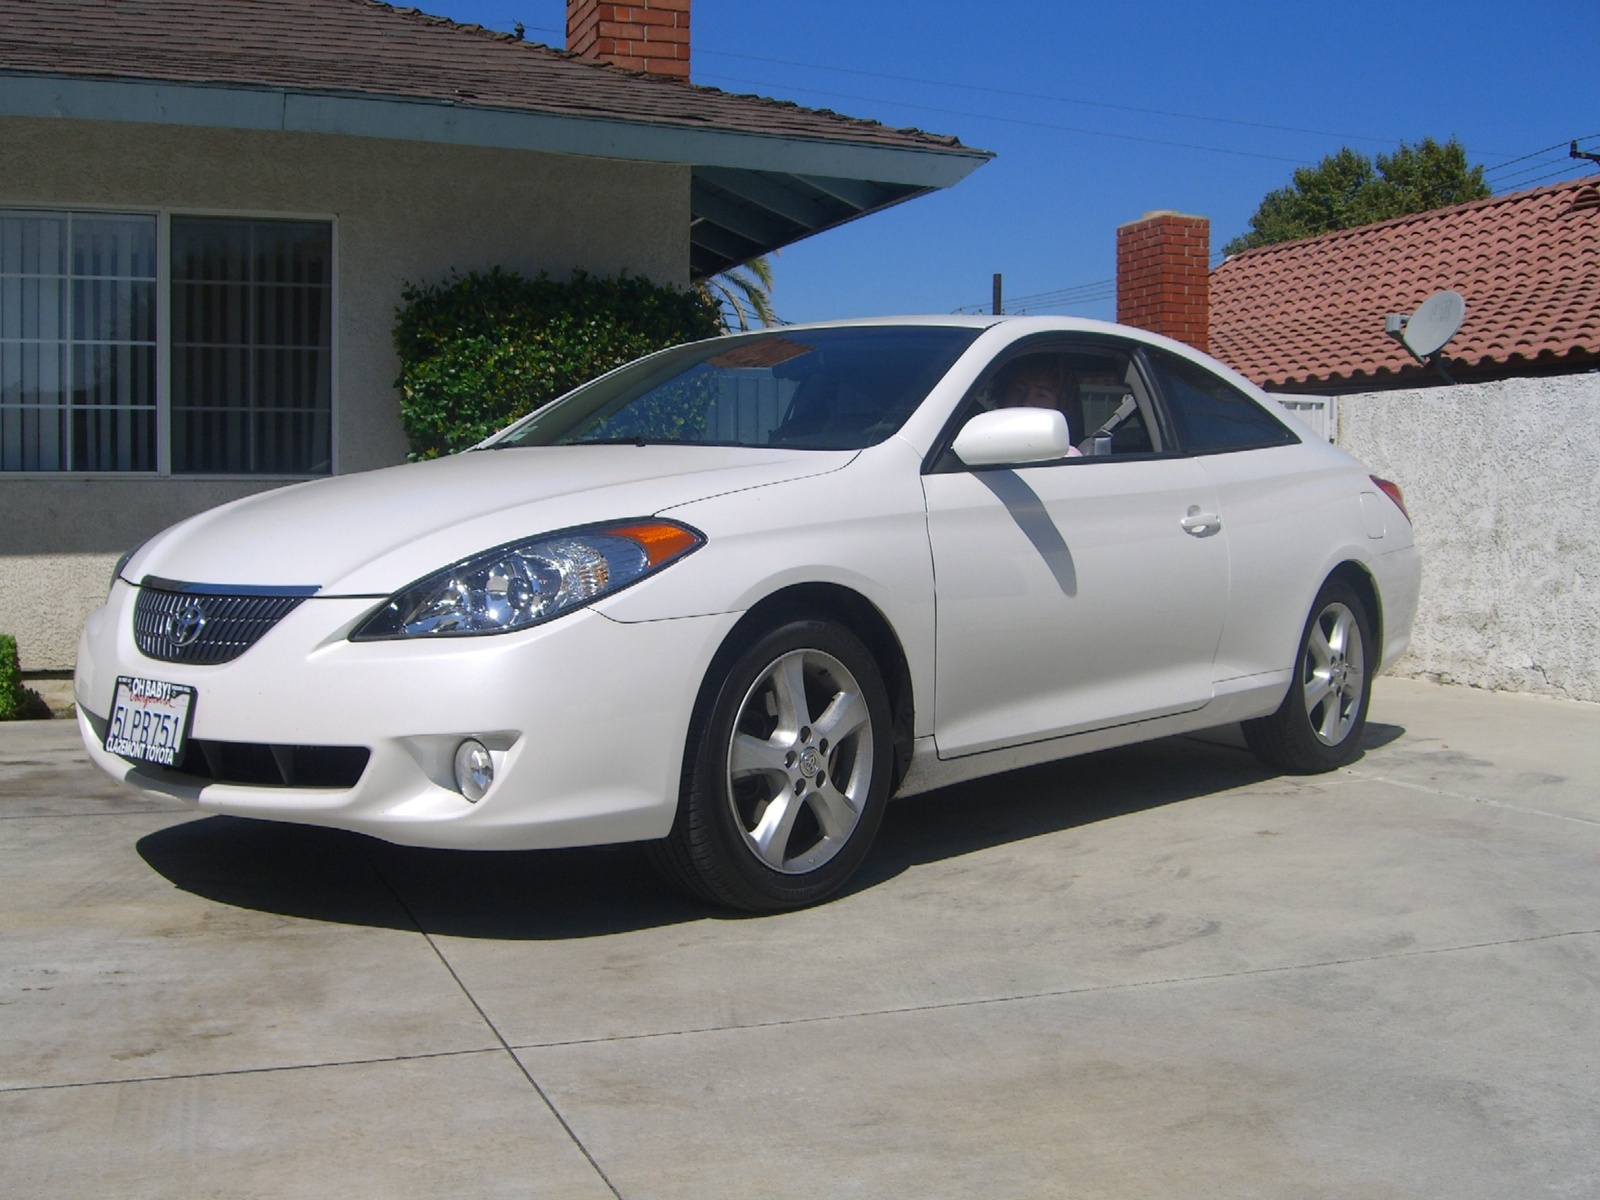 2005 toyota camry solara overview cargurus. Black Bedroom Furniture Sets. Home Design Ideas